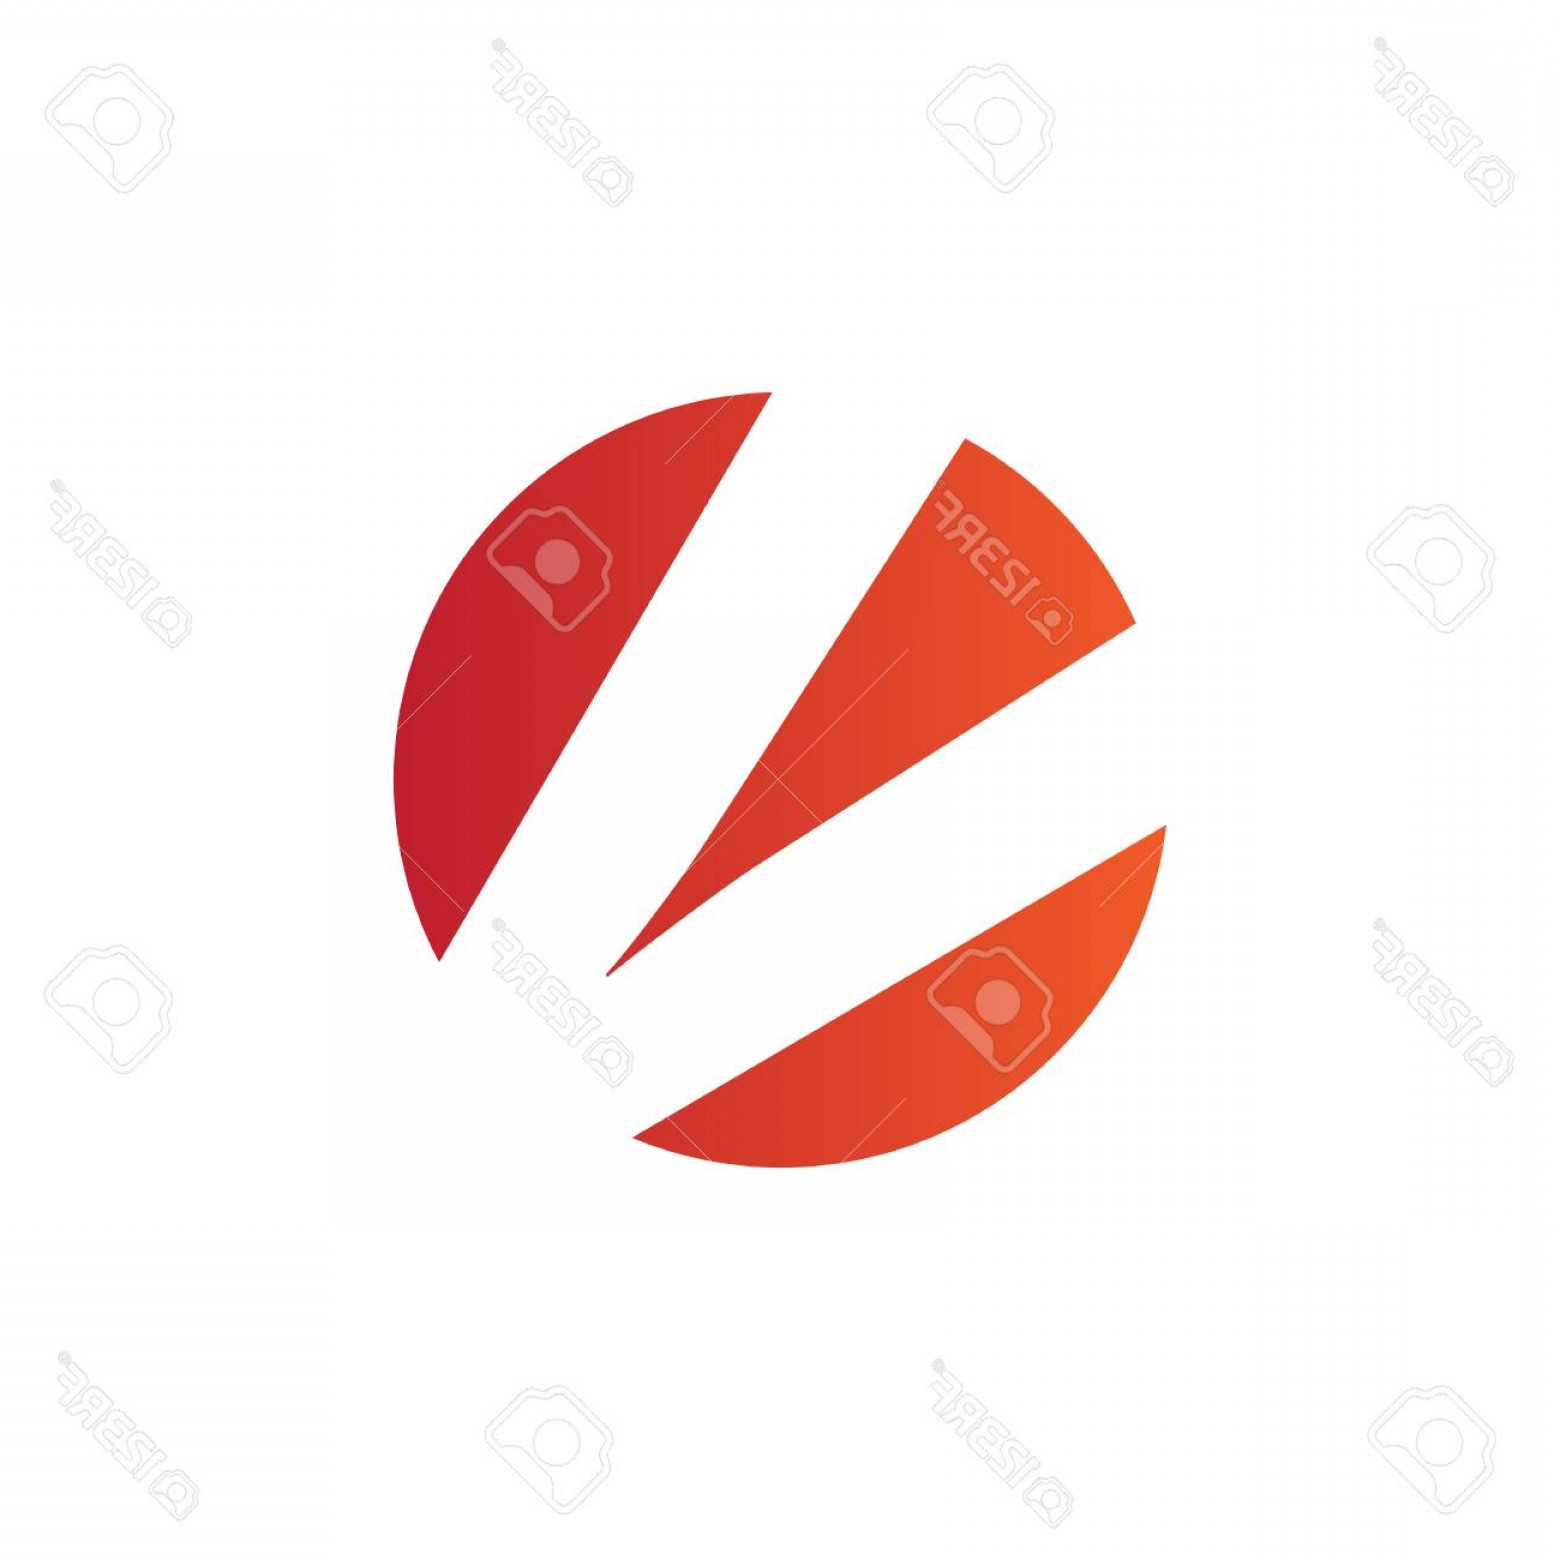 V Logo Vector: Photostock Vector V Logo Vector Graphic Business Branding Letter Element Illustration Orange Negative Space Design Whi